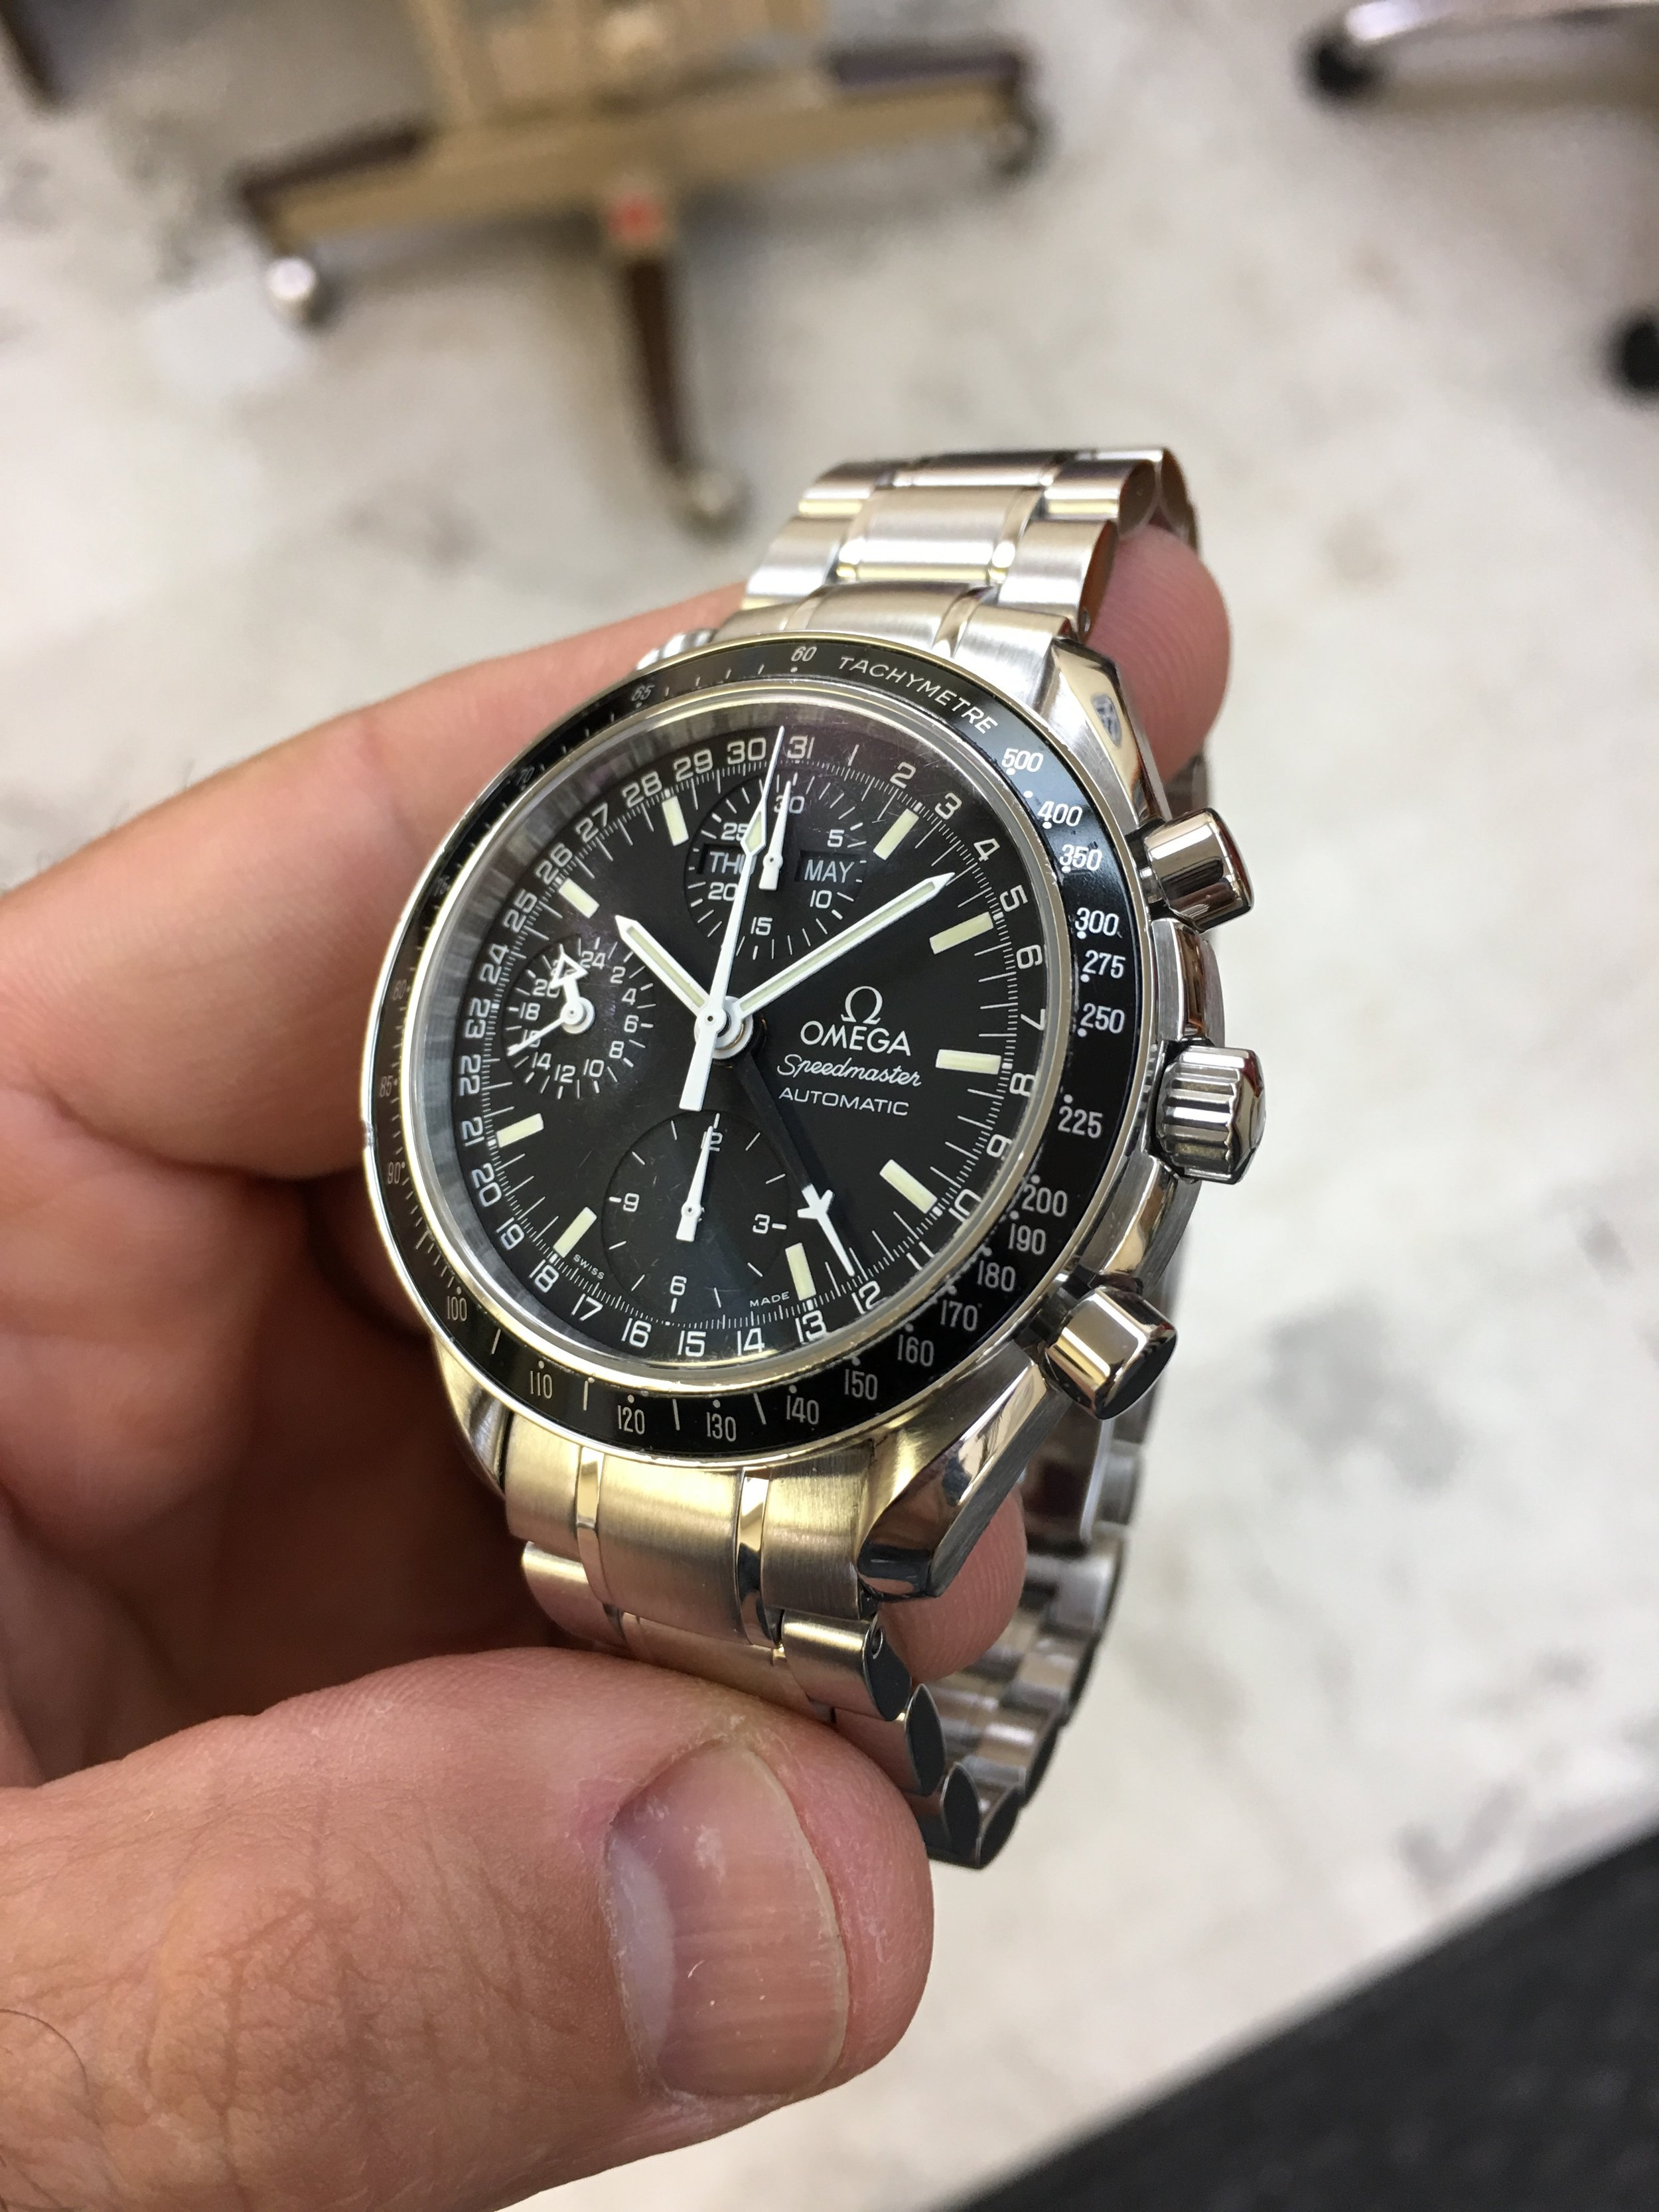 omega Speedmaster dial. Tampa jewelry store watch repair